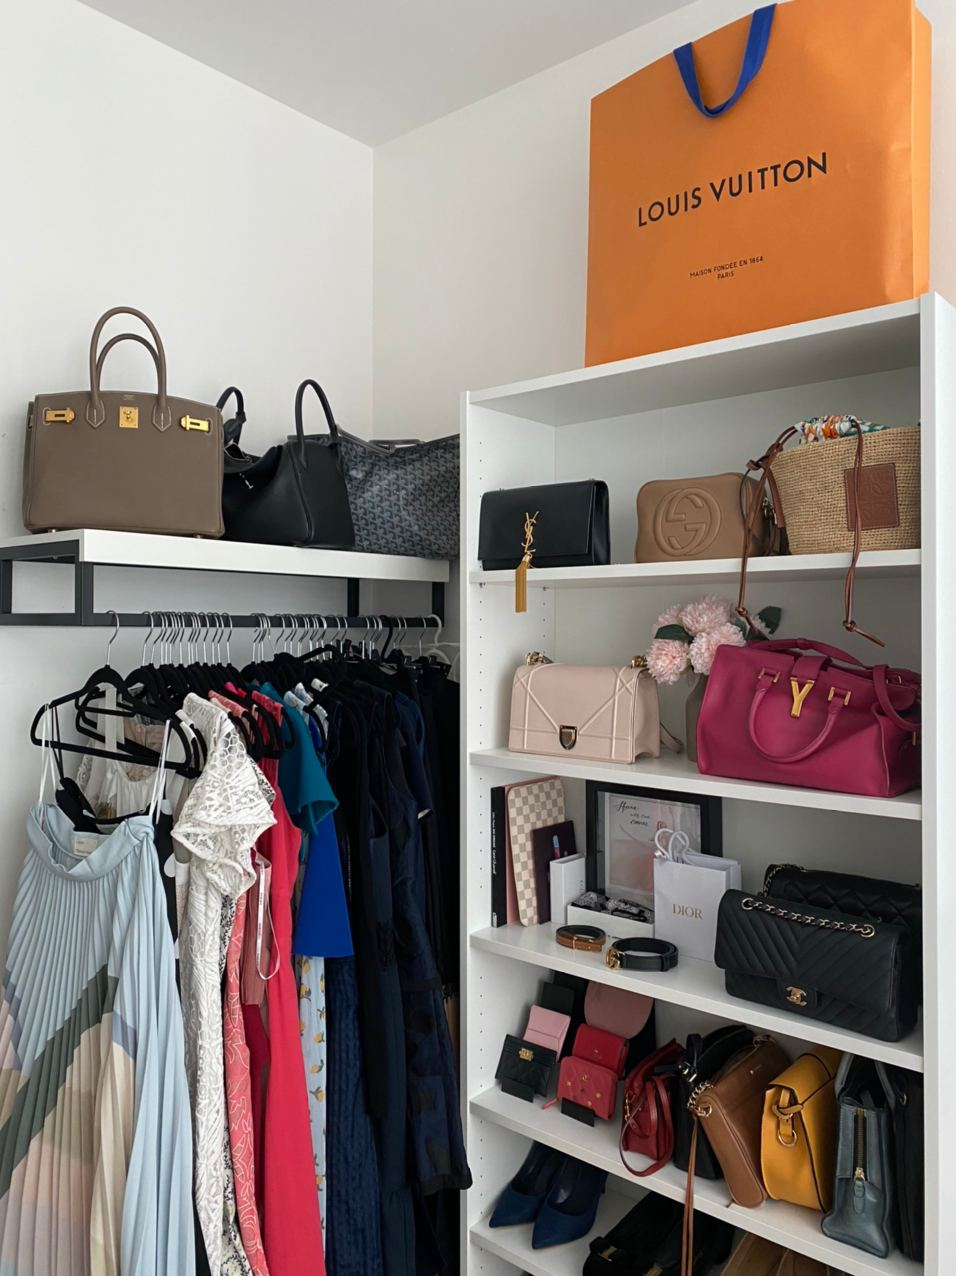 I would sell luxury bags I don't use often, so that they don't become a waste of space and money.